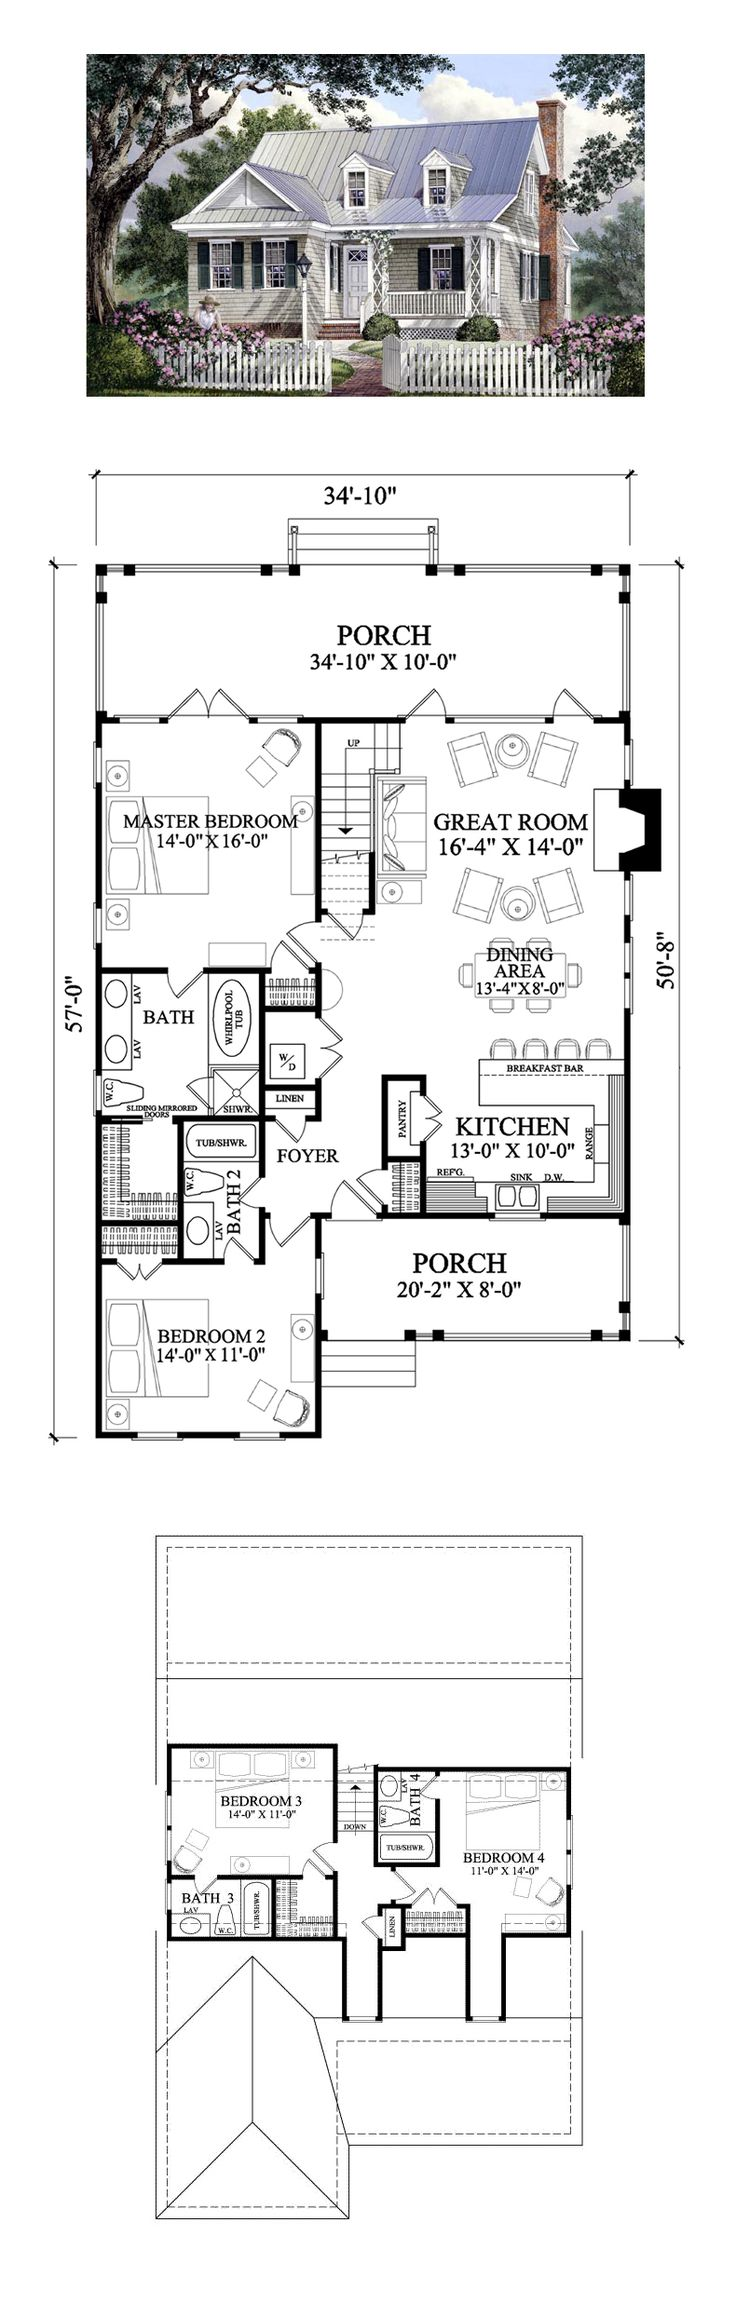 Best 25 Cottage house plans ideas on Pinterest Retirement house